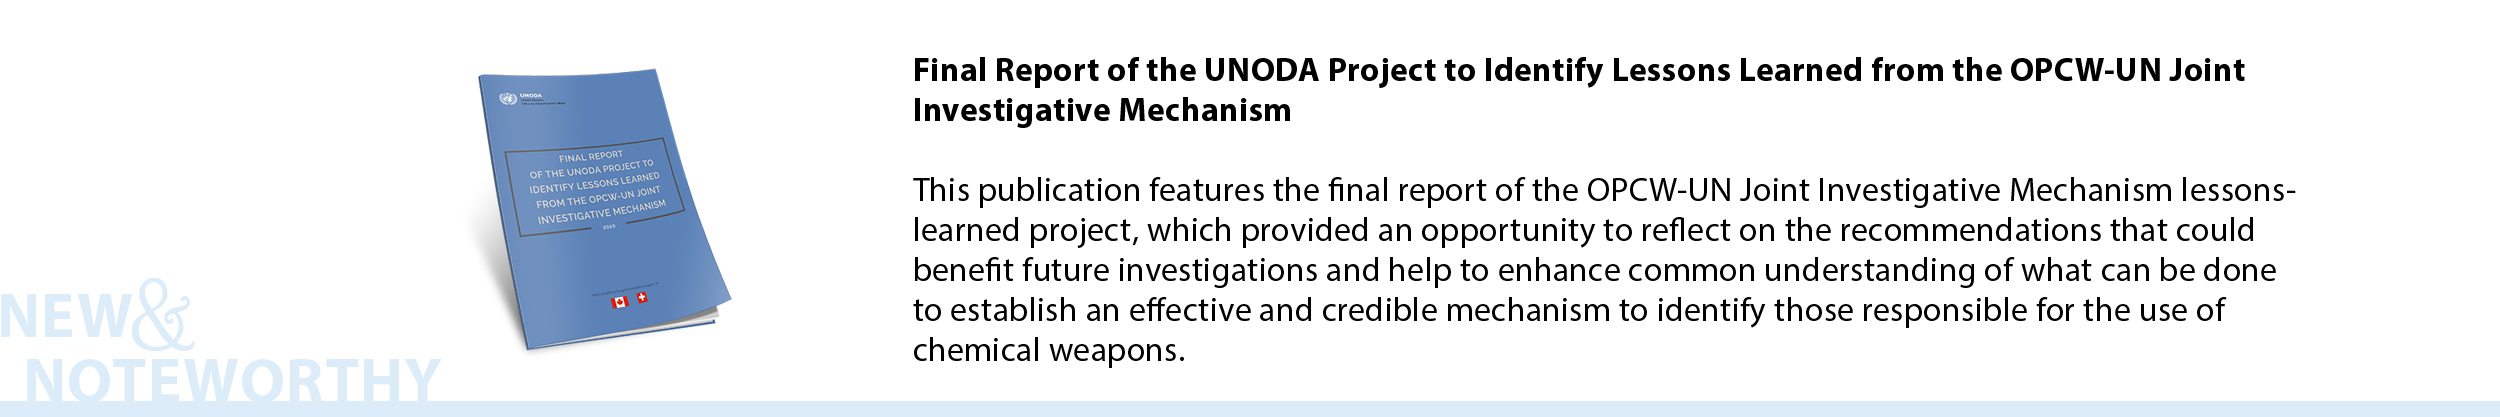 Final Report of the UNODA Project to Identify Lessons Learned from the OPCW-UN Joint Investigative Mechanism -This publication features the final report of the OPCW-UN Joint Investigative Mechanism lessons-learned project, which provided an opportunity to reflect on the recommendations that could benefit future investigations and help to enhance common understanding of what can be done to establish an effective and credible mechanism to identify those responsible for the use of chemical weapons.